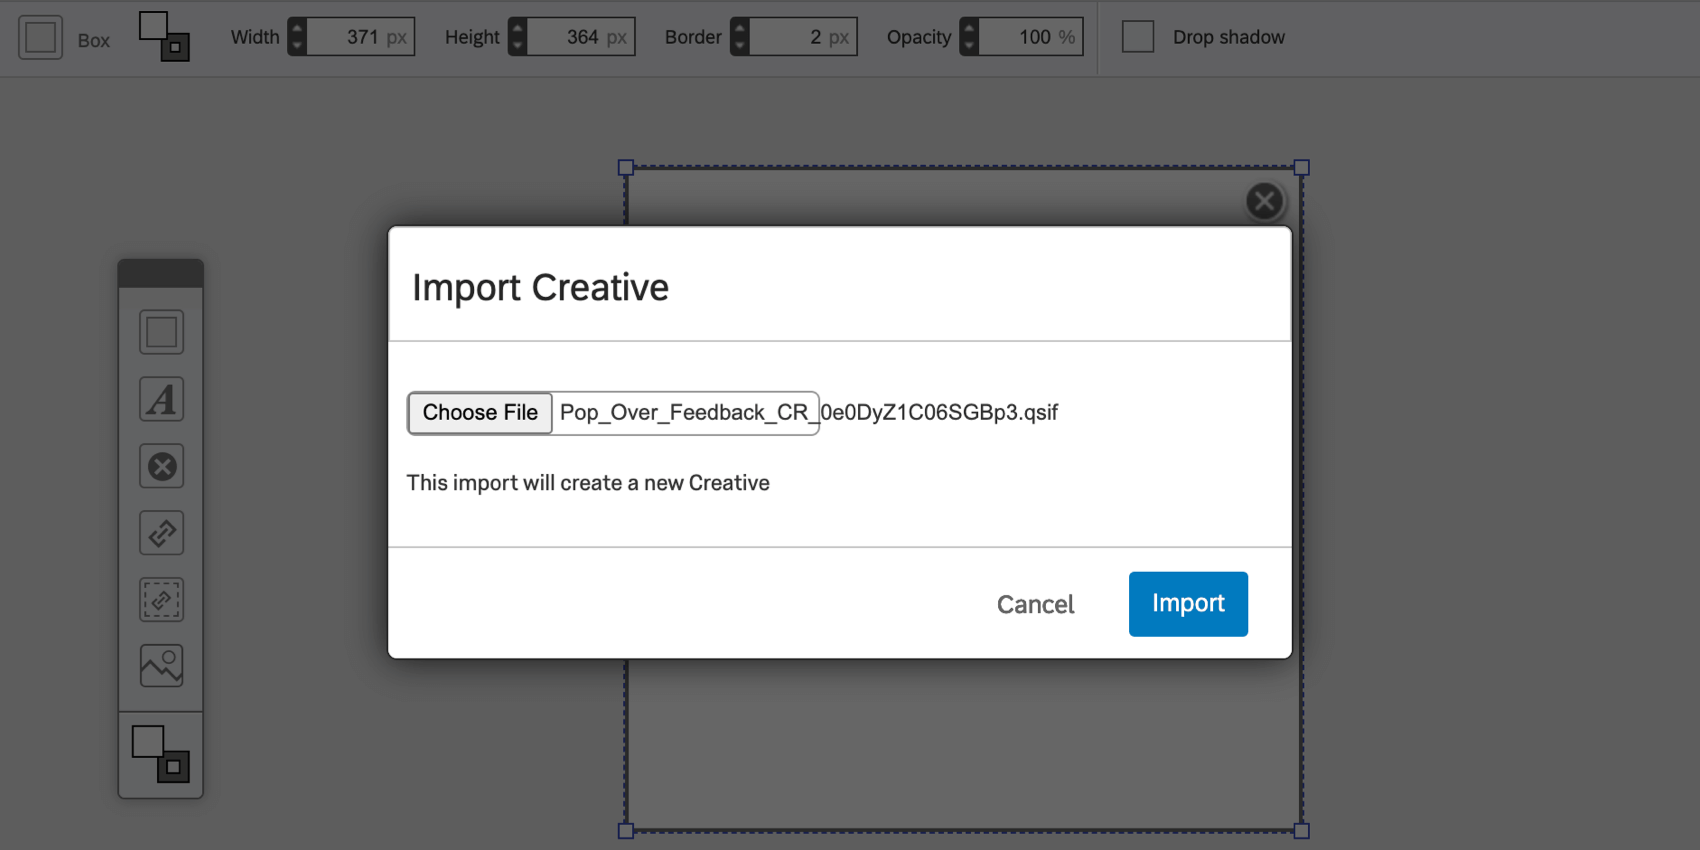 Import Creative window with a Choose File button to the left and the green Import button on the bottom-right